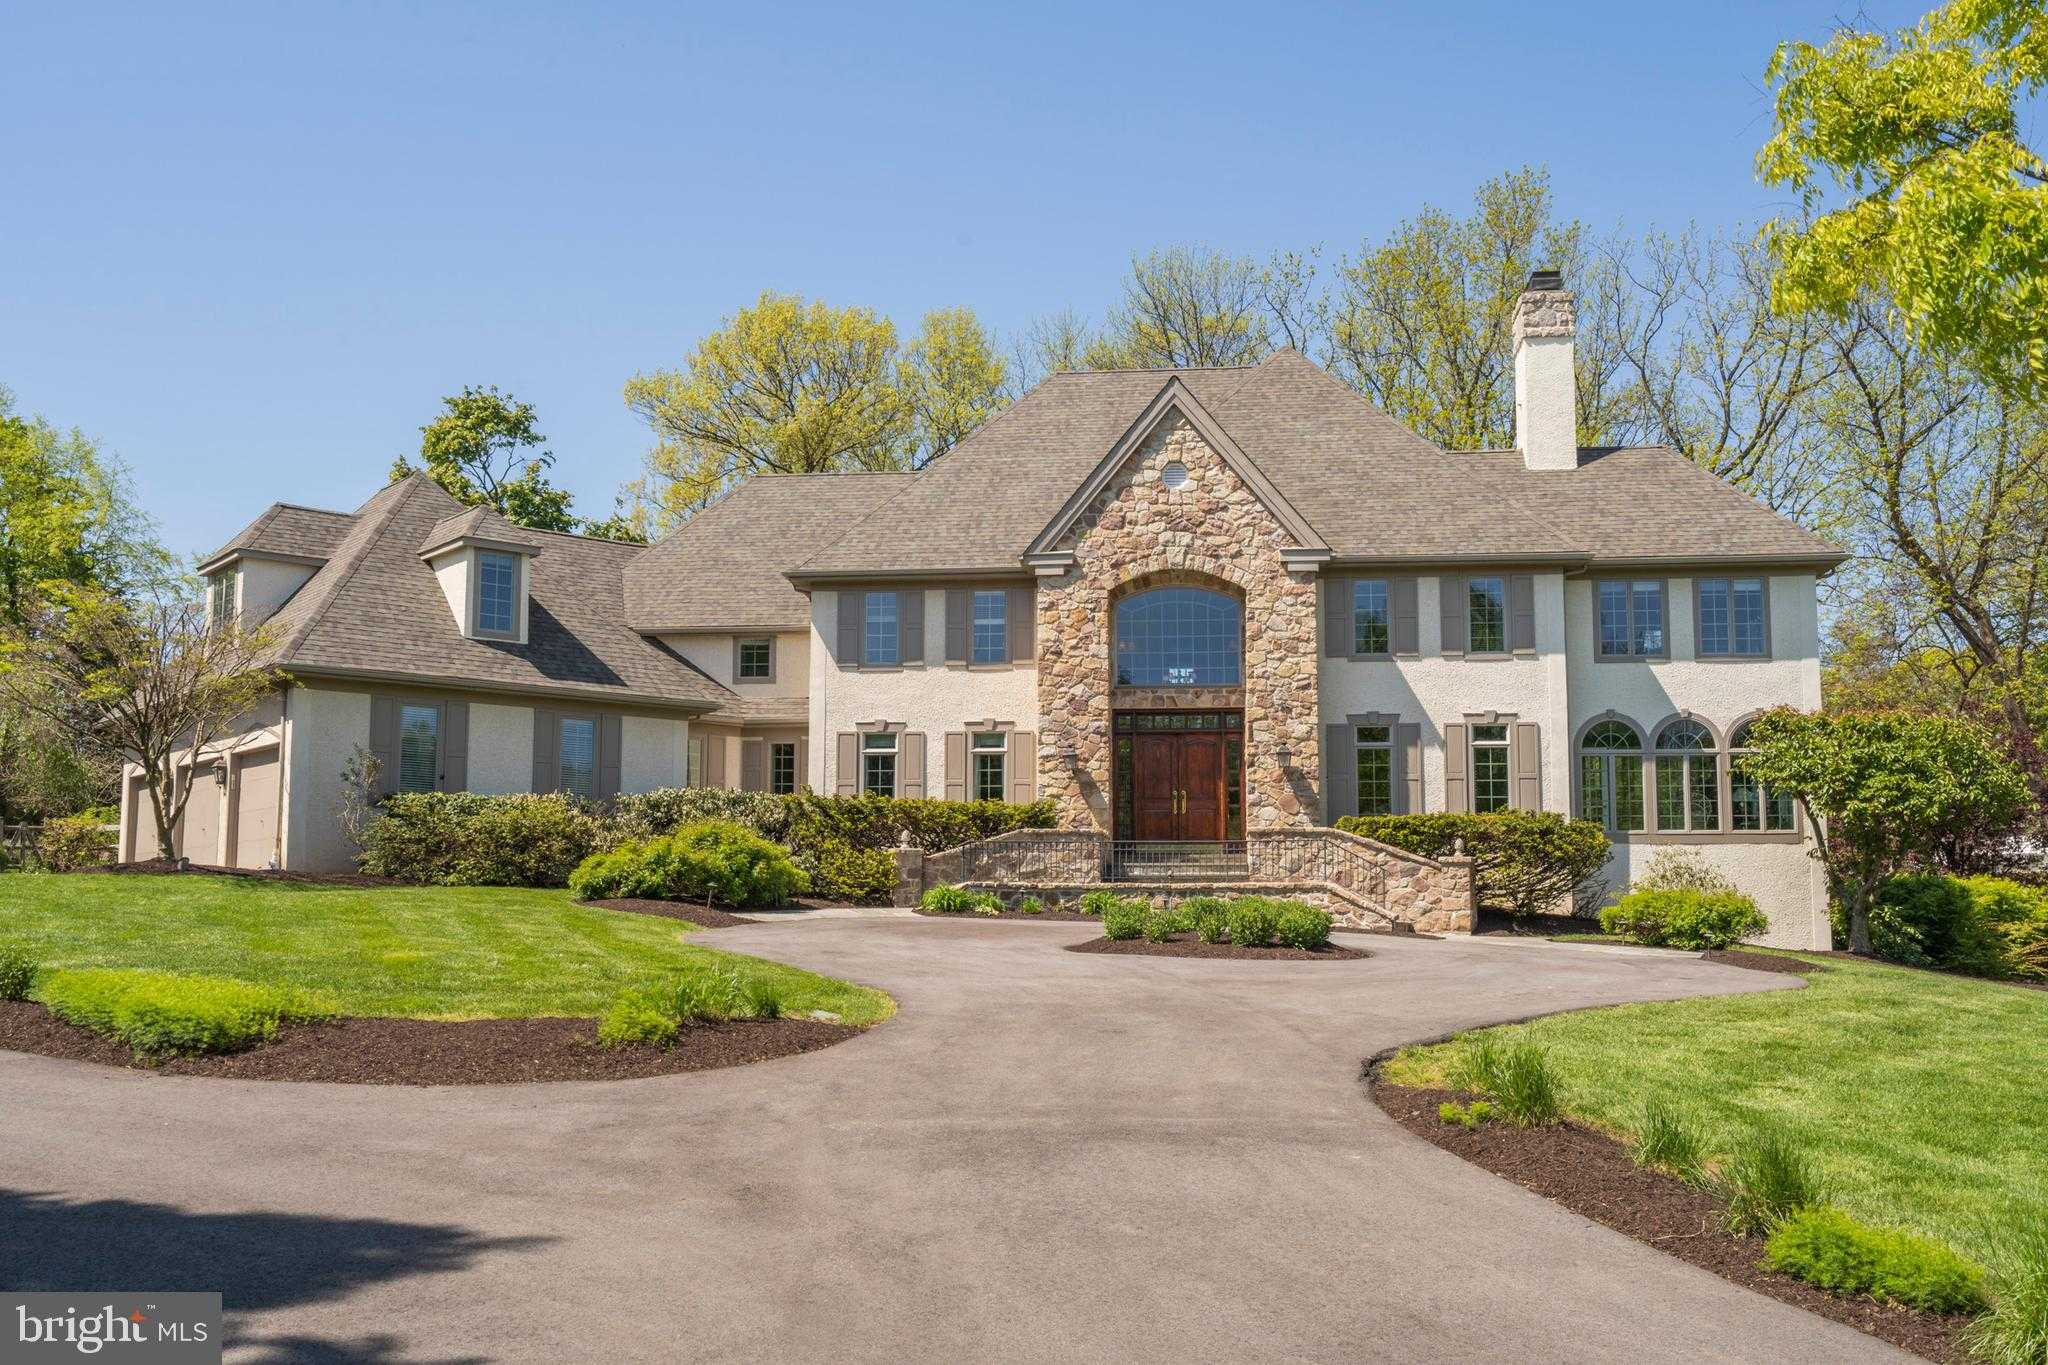 $1,599,900 - 5Br/7Ba -  for Sale in Aronimink, Newtown Square